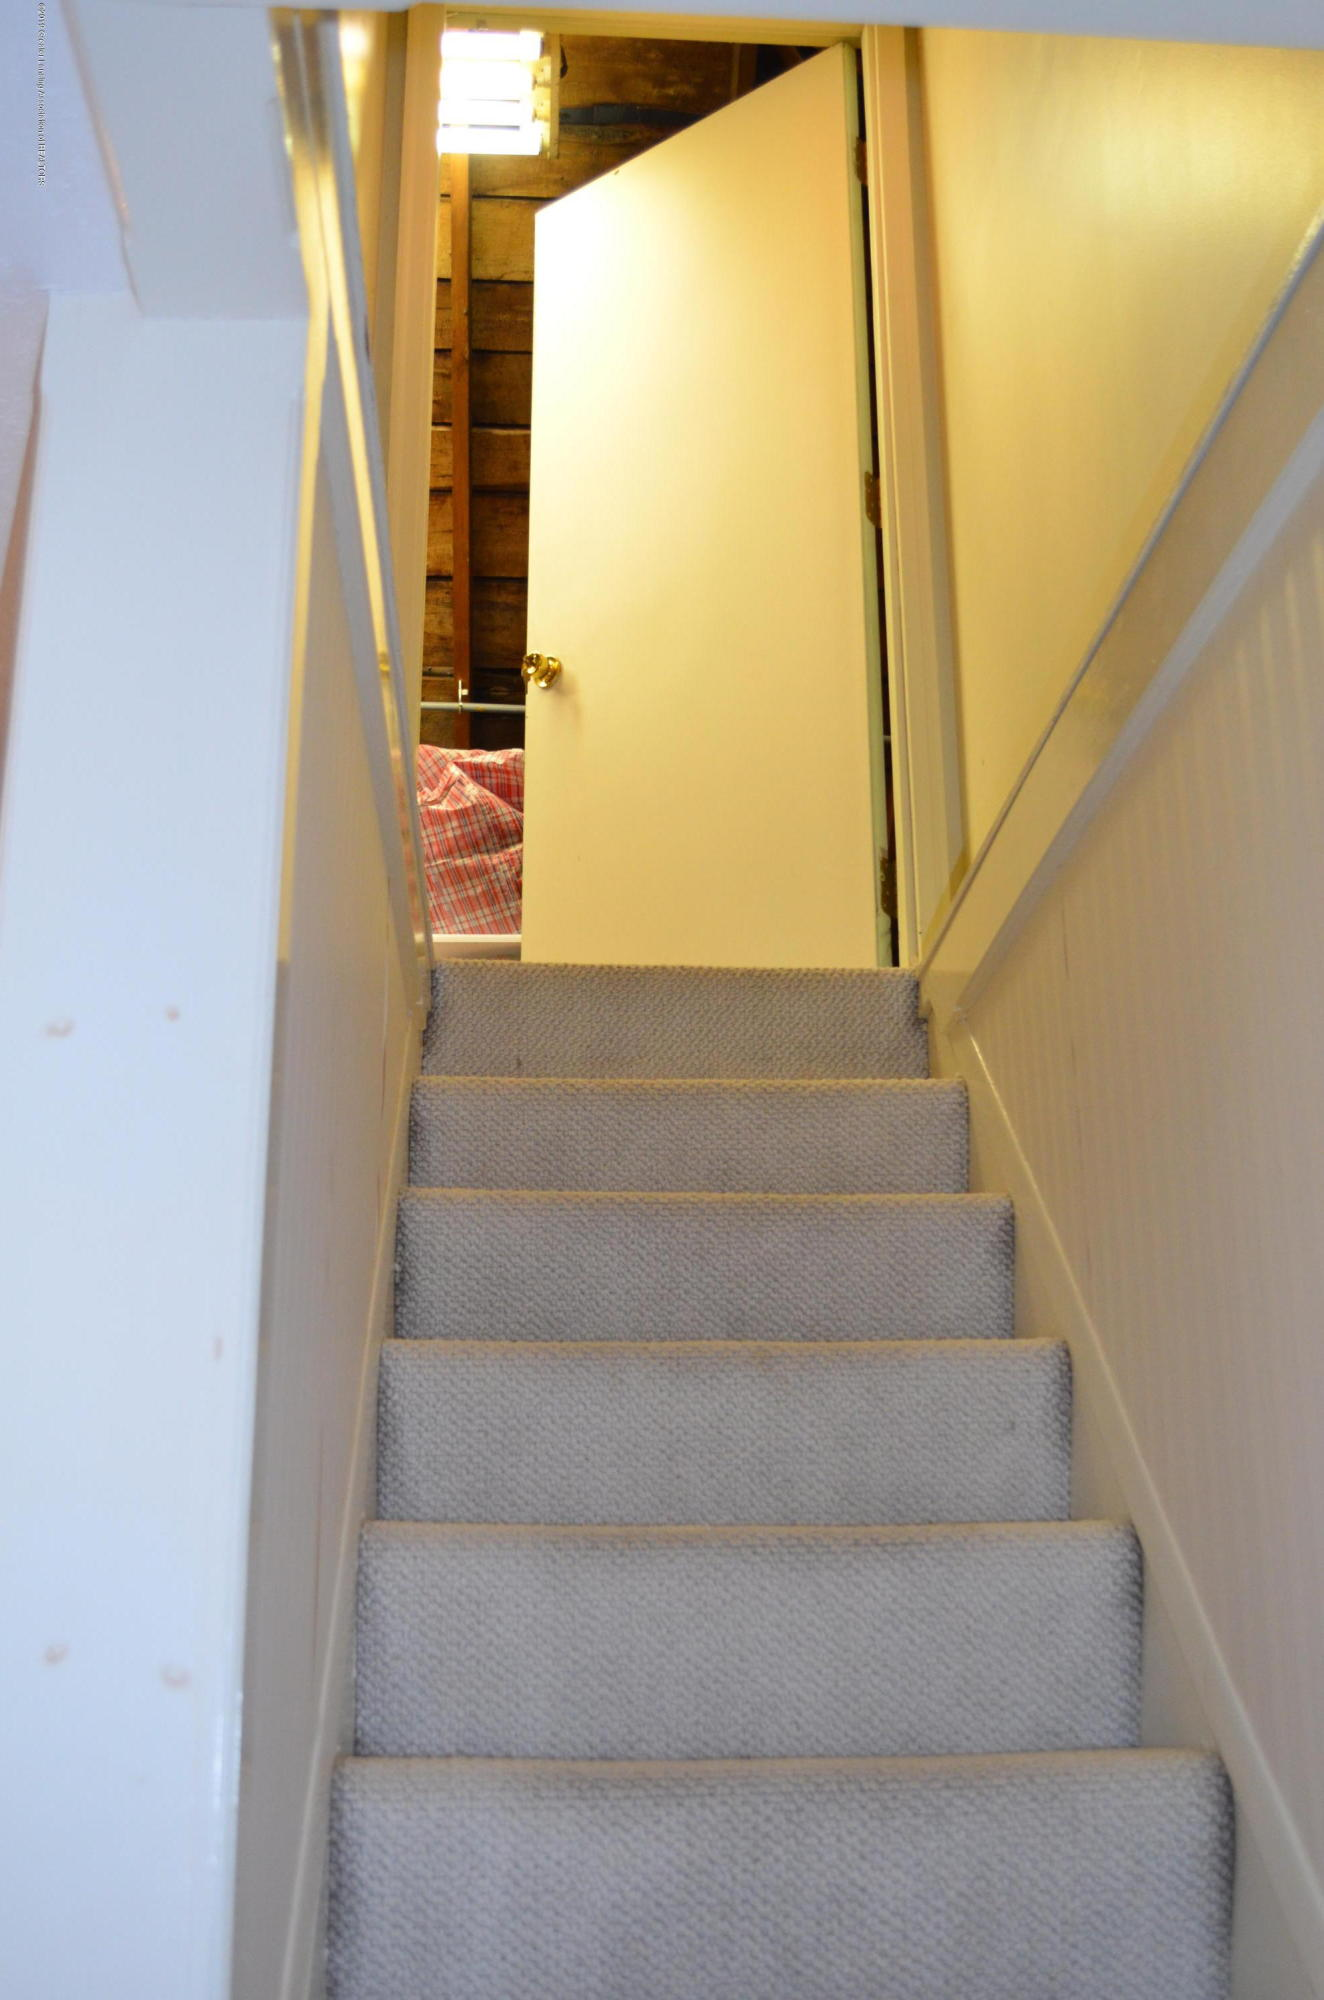 693 Grovenburg Rd - Stairs to attic - 37